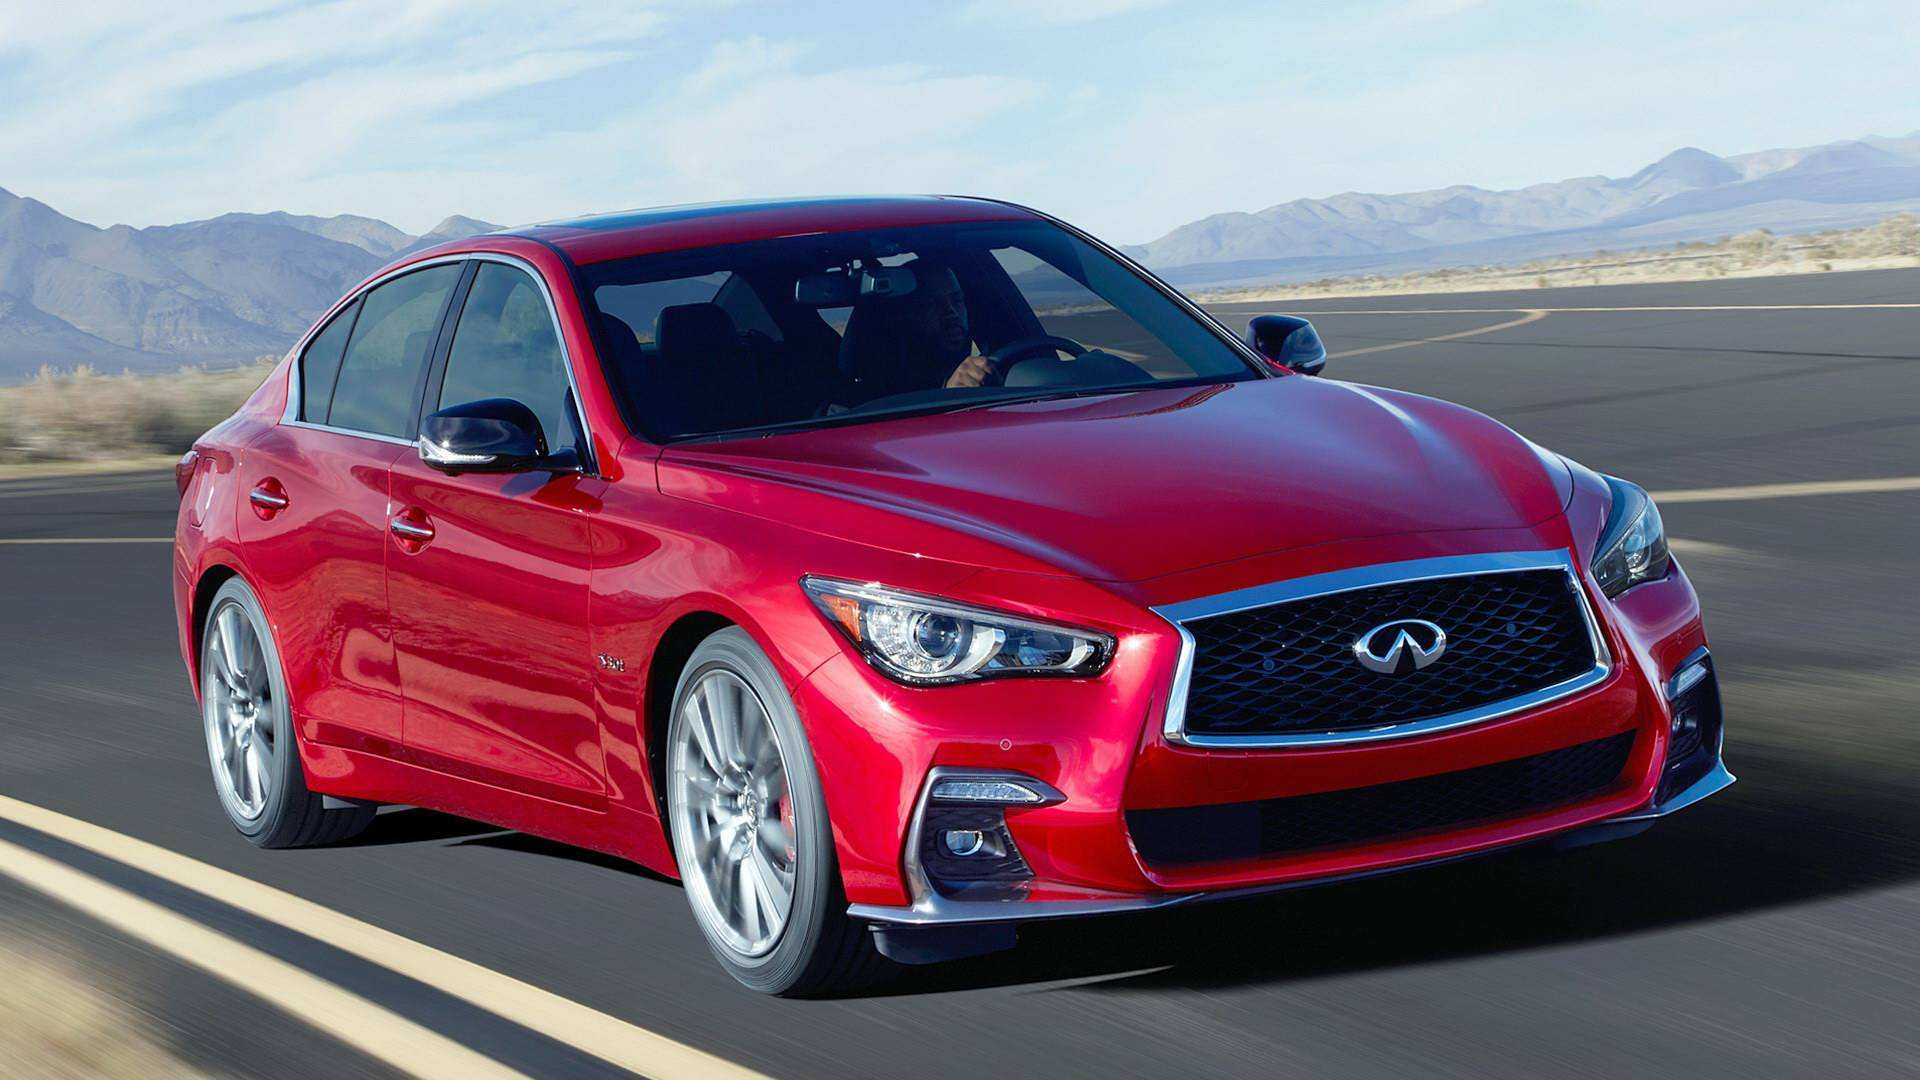 72 Best Review Infiniti 2020 Vehicles Price with Infiniti 2020 Vehicles